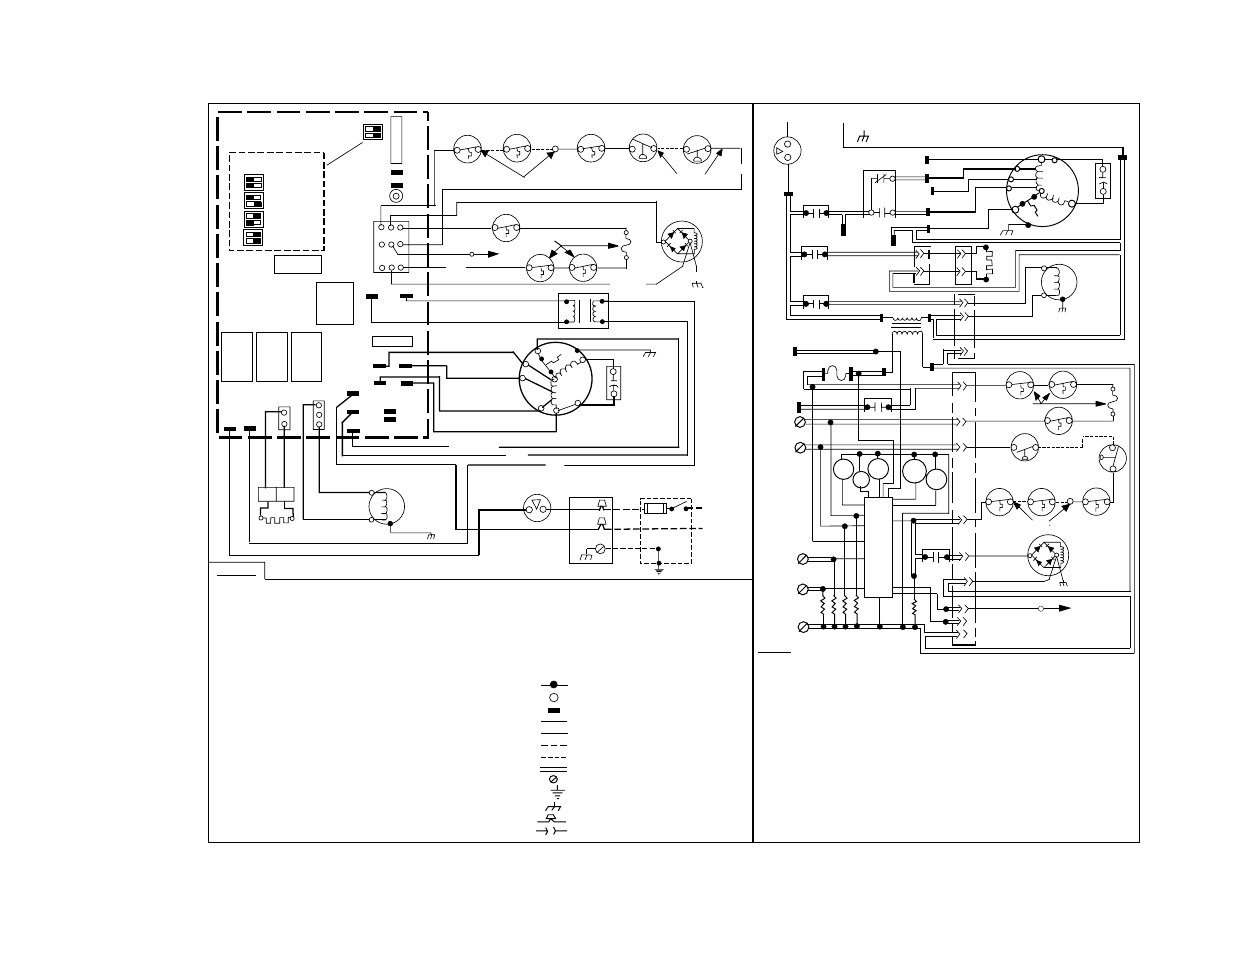 Bryant Wiring Diagram Schemes Thermostat Fig 11 395cav User Manual Page 12 20 Rh Manualsdir Com For Air Handler